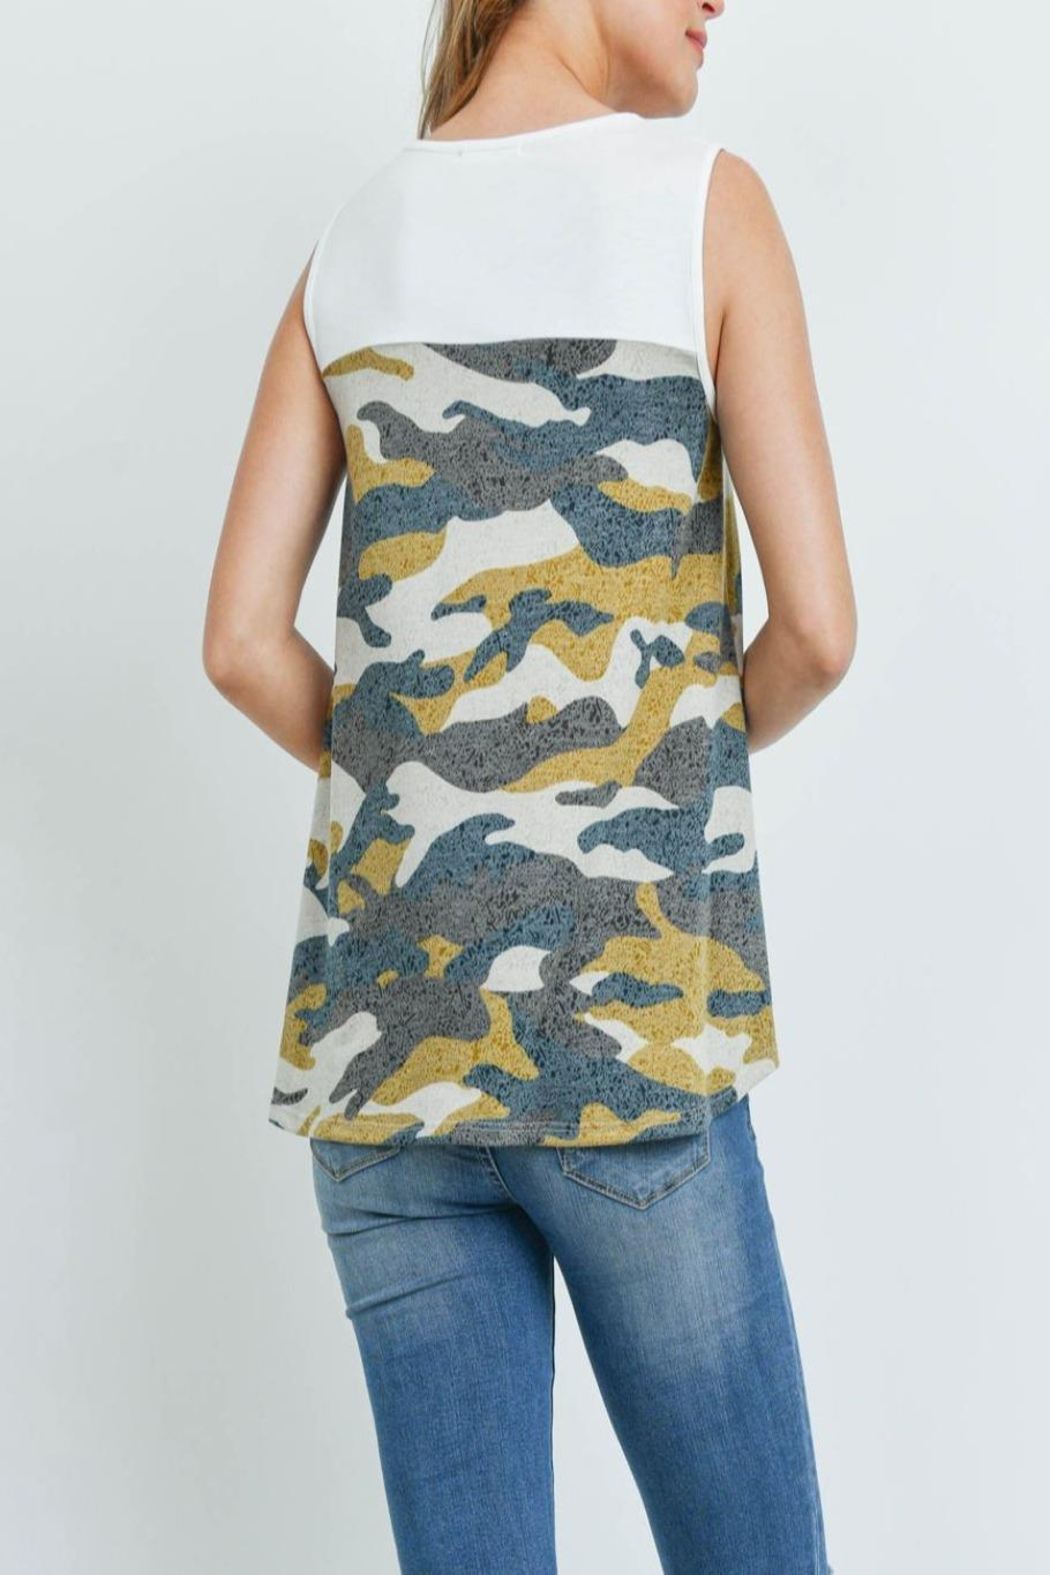 Riah Fashion Solid-Contrast-Camo-Print-Sleeveless-Swing-Top - Front Full Image